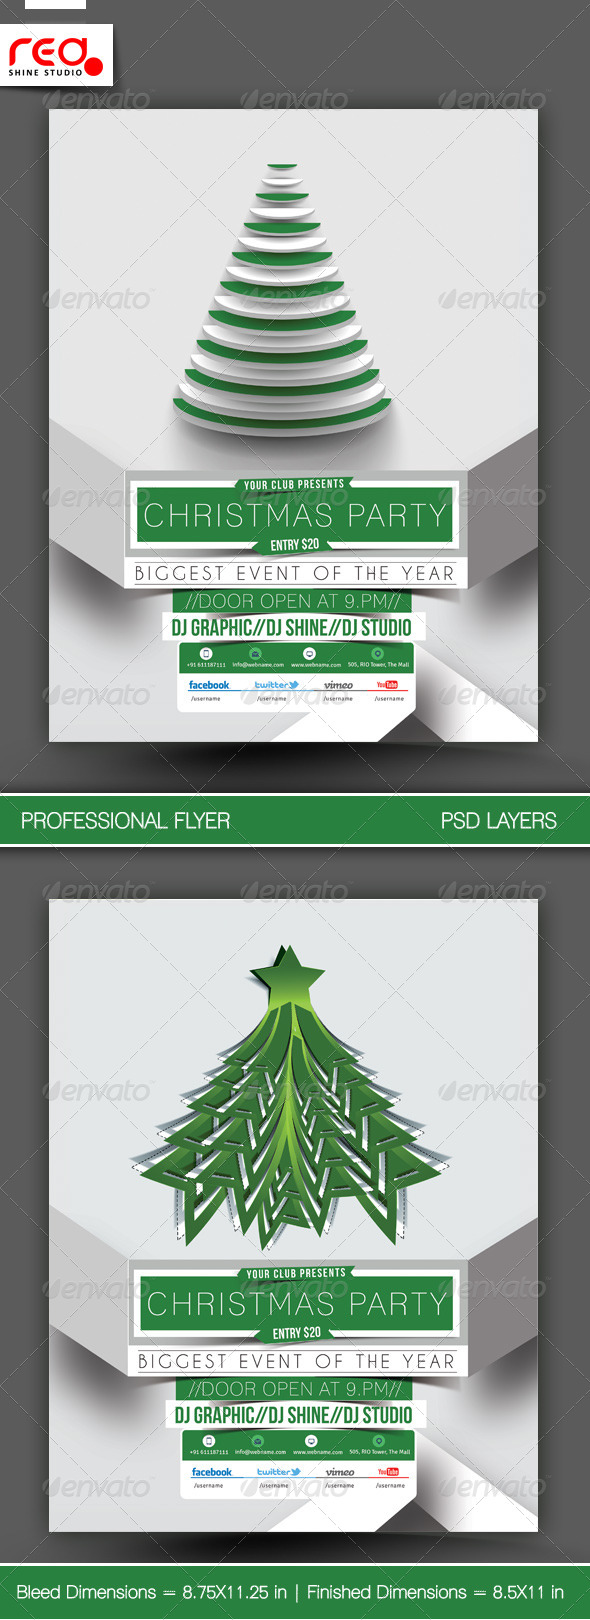 GraphicRiver Christmas Party Flyer & Poster Template 2 6056905